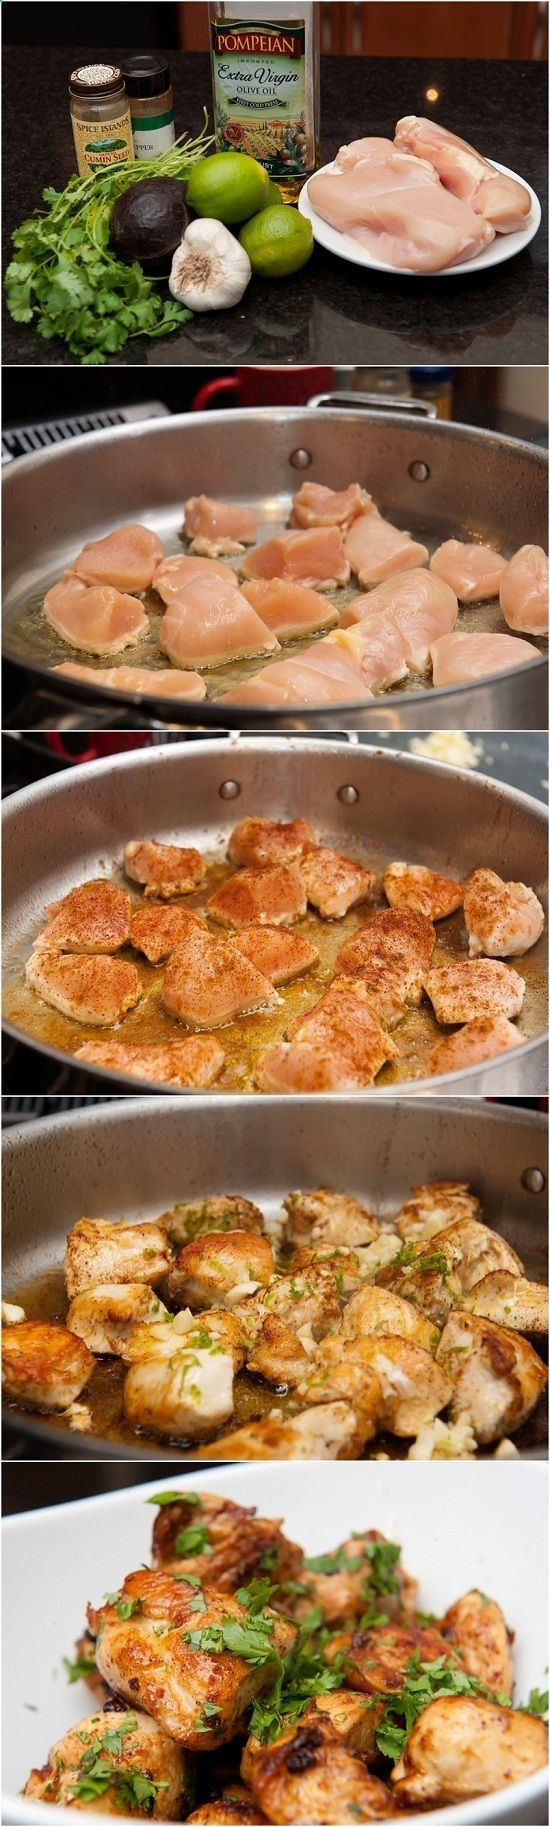 Quick Lime Cilantro Chicken // Boneless Chicken, 3 breasts Limes, 3 or 4 Garlic, 4 to 6 cloves Olive Oil Cumin Cayenne or Chili Powder Cilantro, 1/4 cup, snipped Avocado, optional - poshhome.info